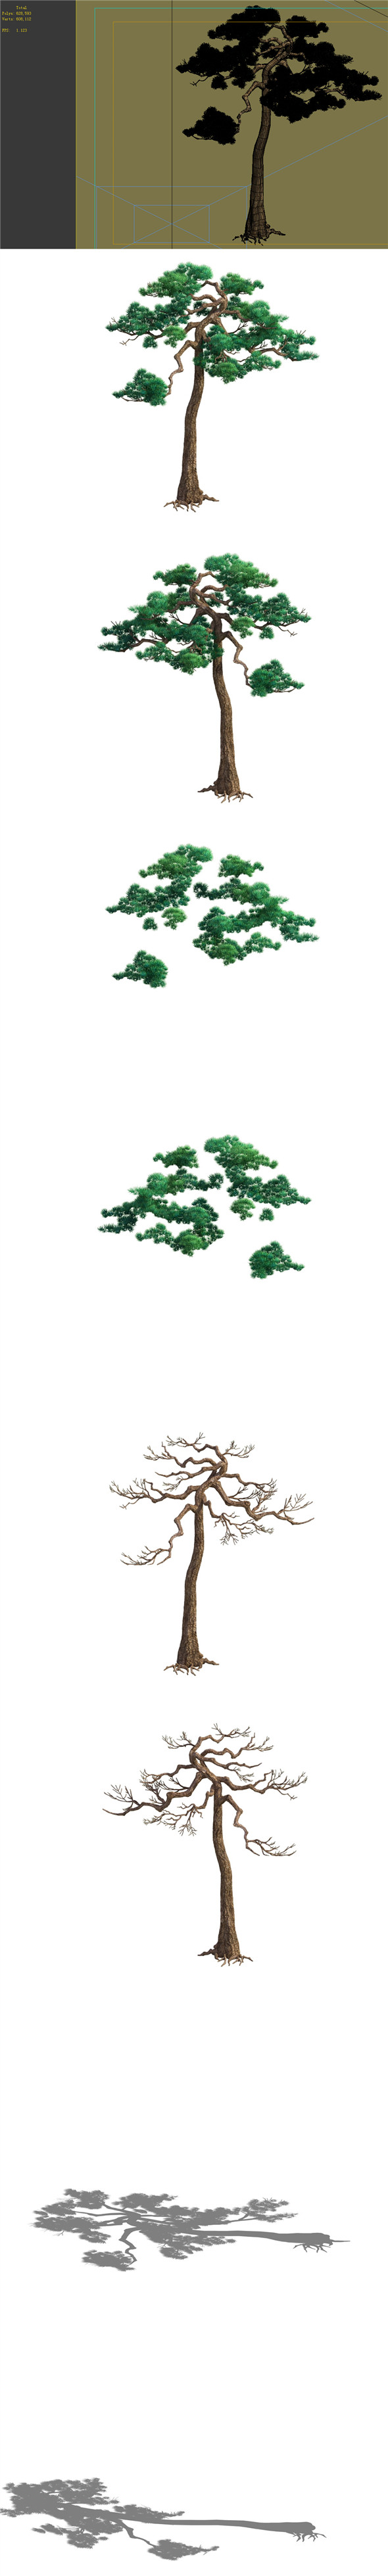 Game Model - Taoist comprehension scene - Pine 08 01 - 3DOcean Item for Sale